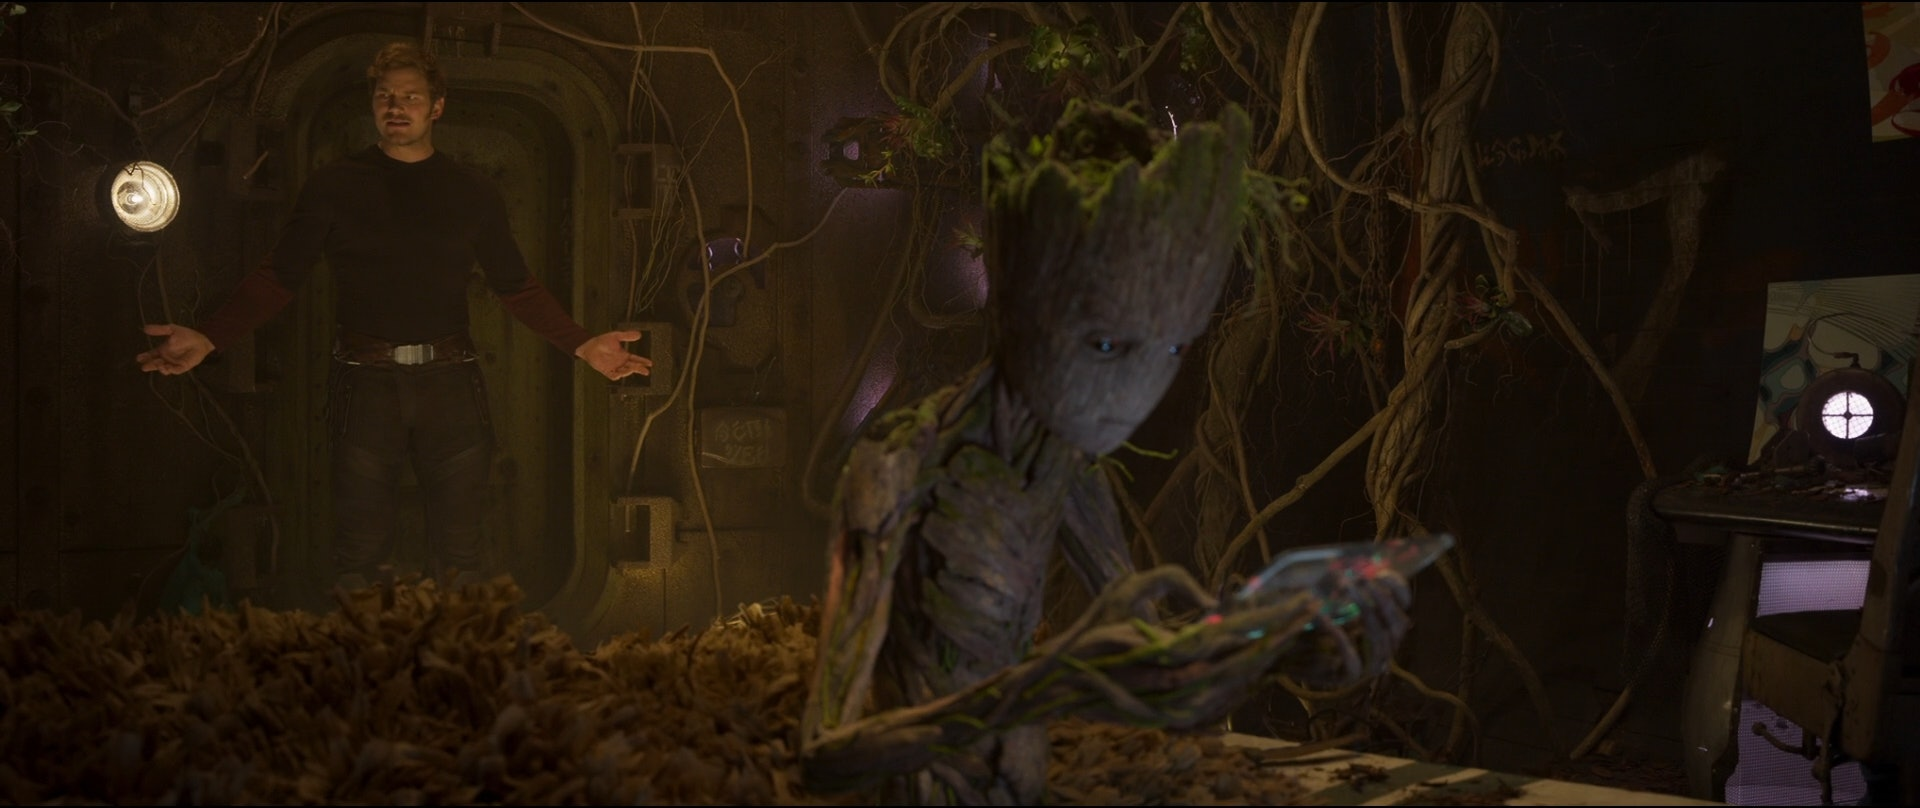 Teen Groot has some sass in the post-credits scene of the second 'Guardians of the Galaxy' film.